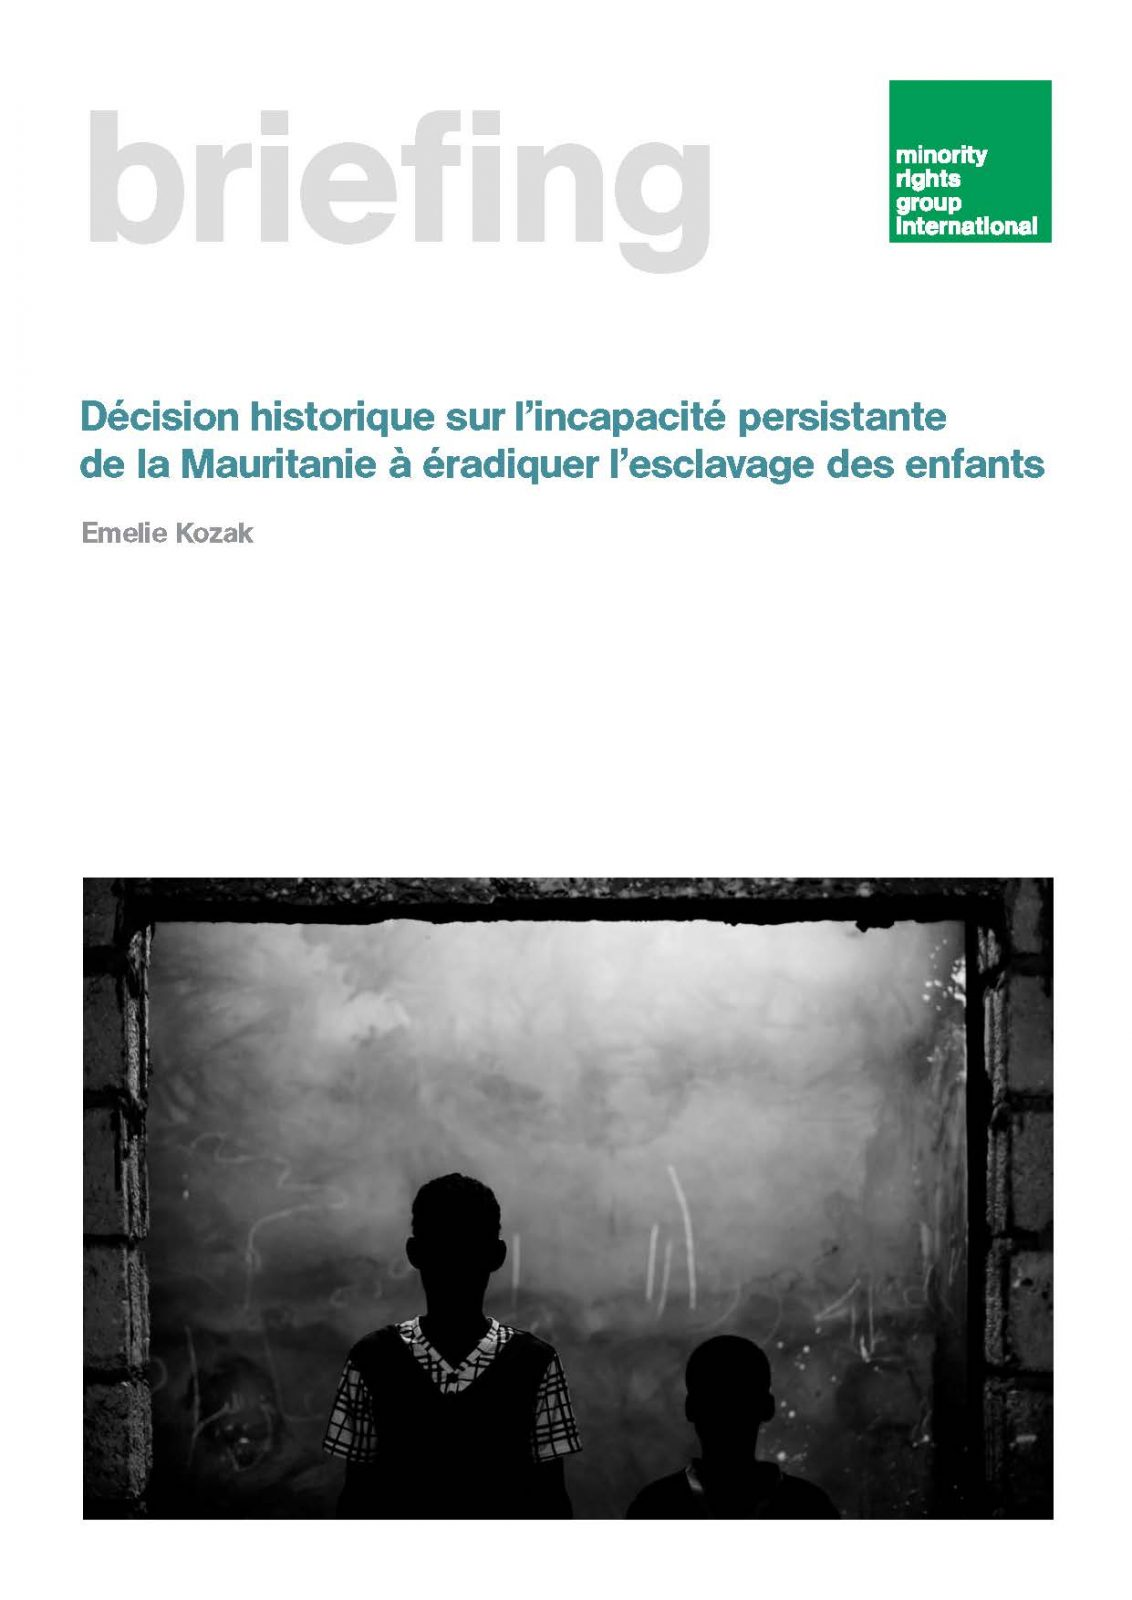 Landmark ruling on Mauritania's continued failure to eradicate child slavery